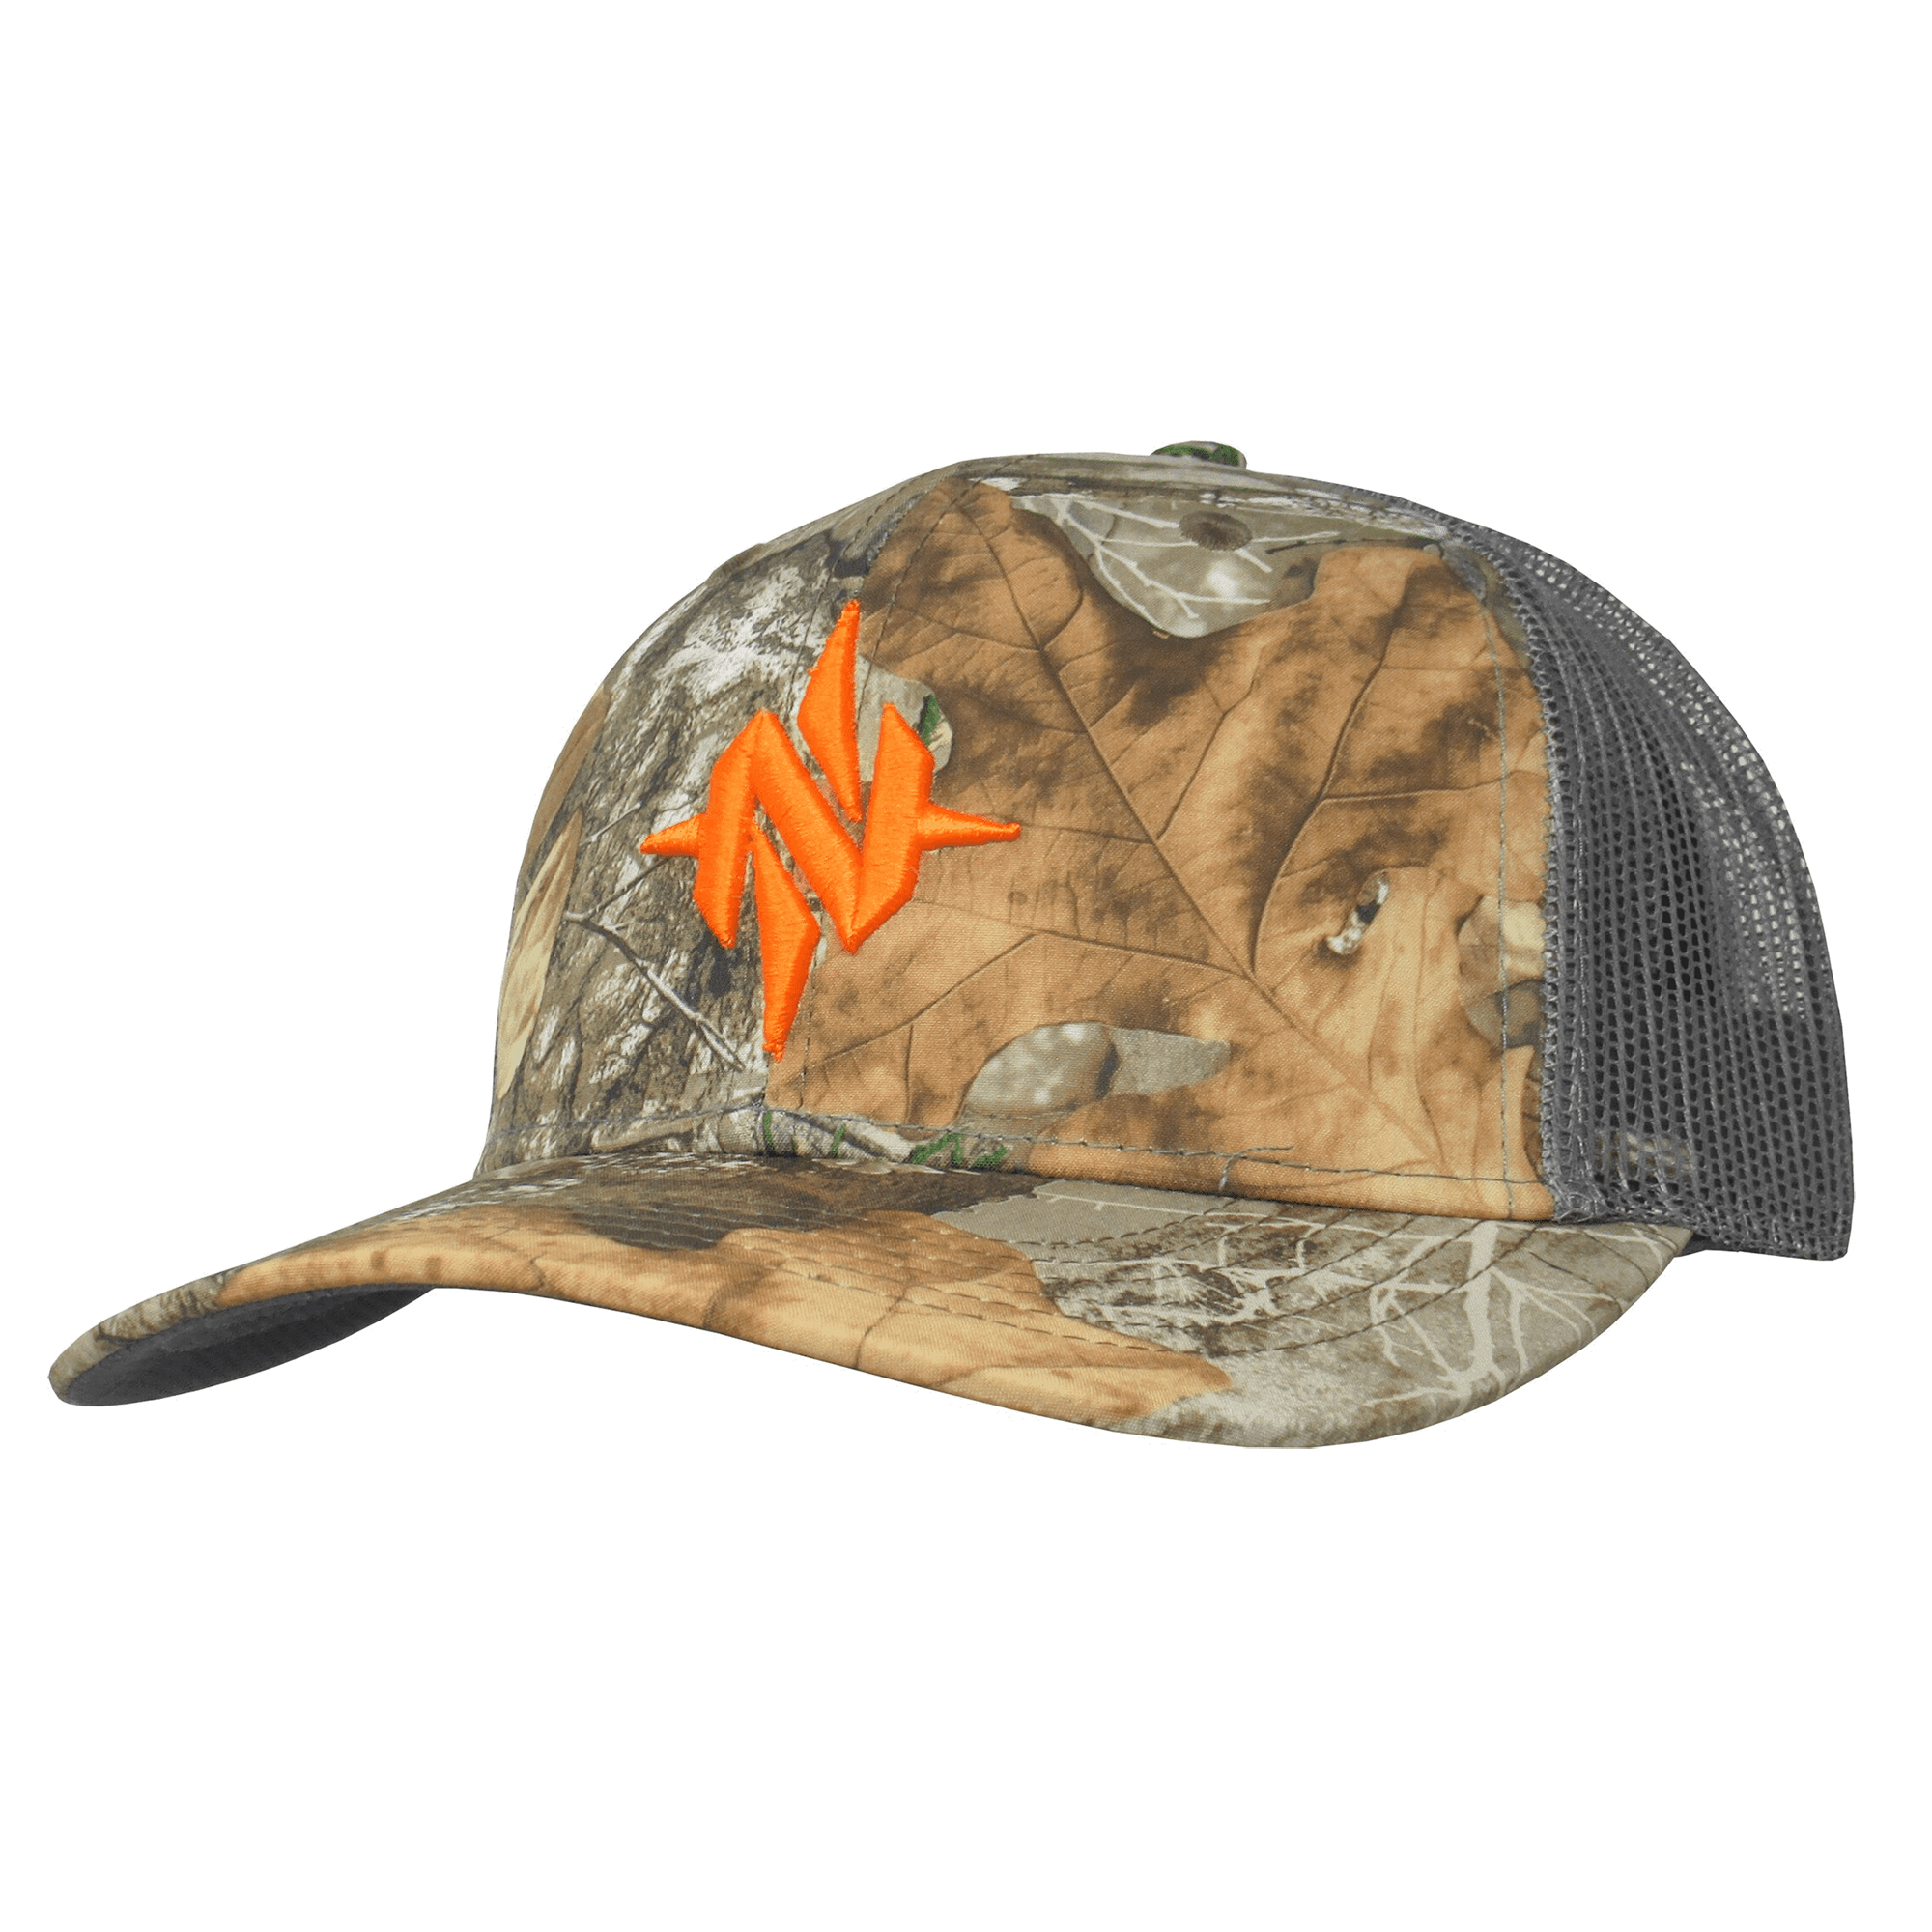 Nomad Men's Camo Trucker Cap